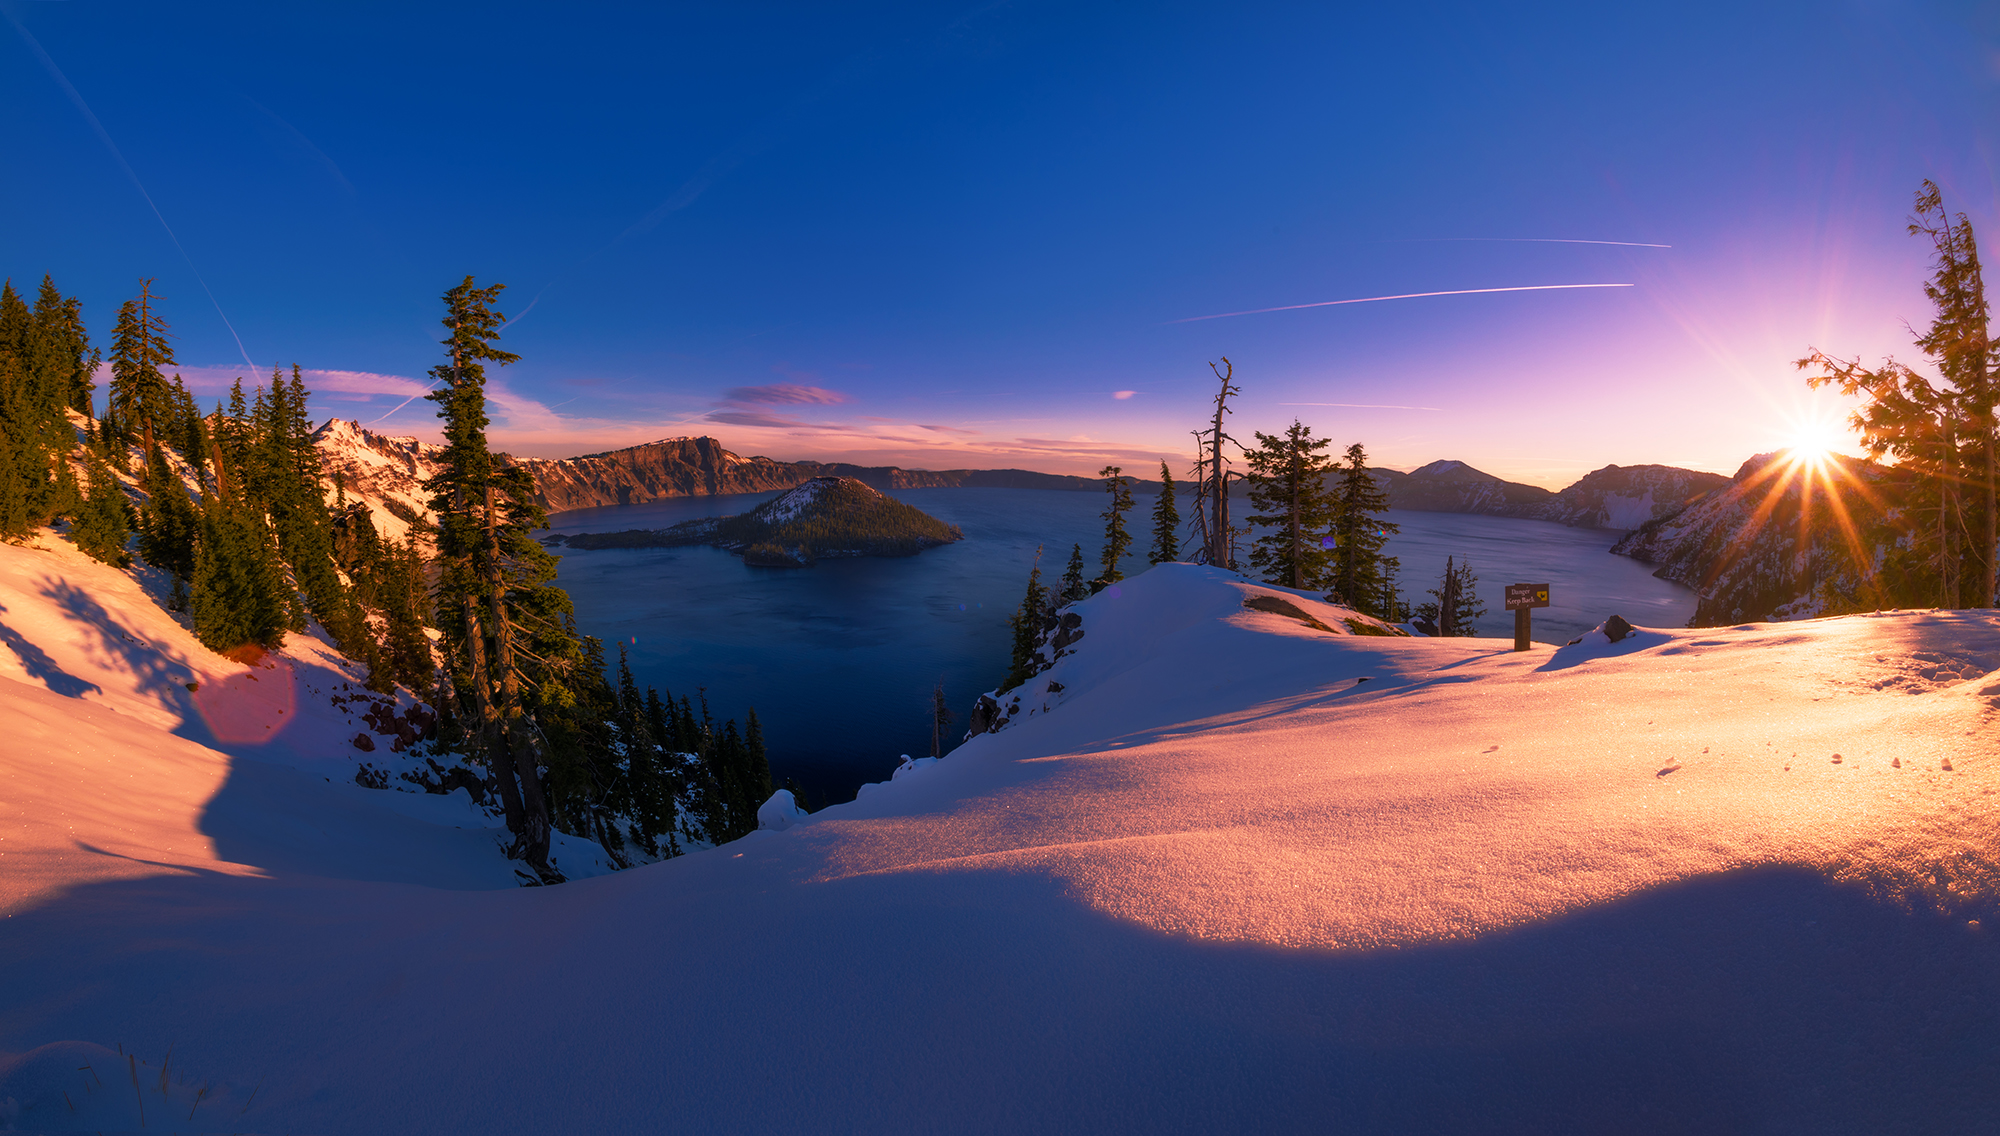 Snowy Sunrise at Crater Lake National Park - Travel Caffeine